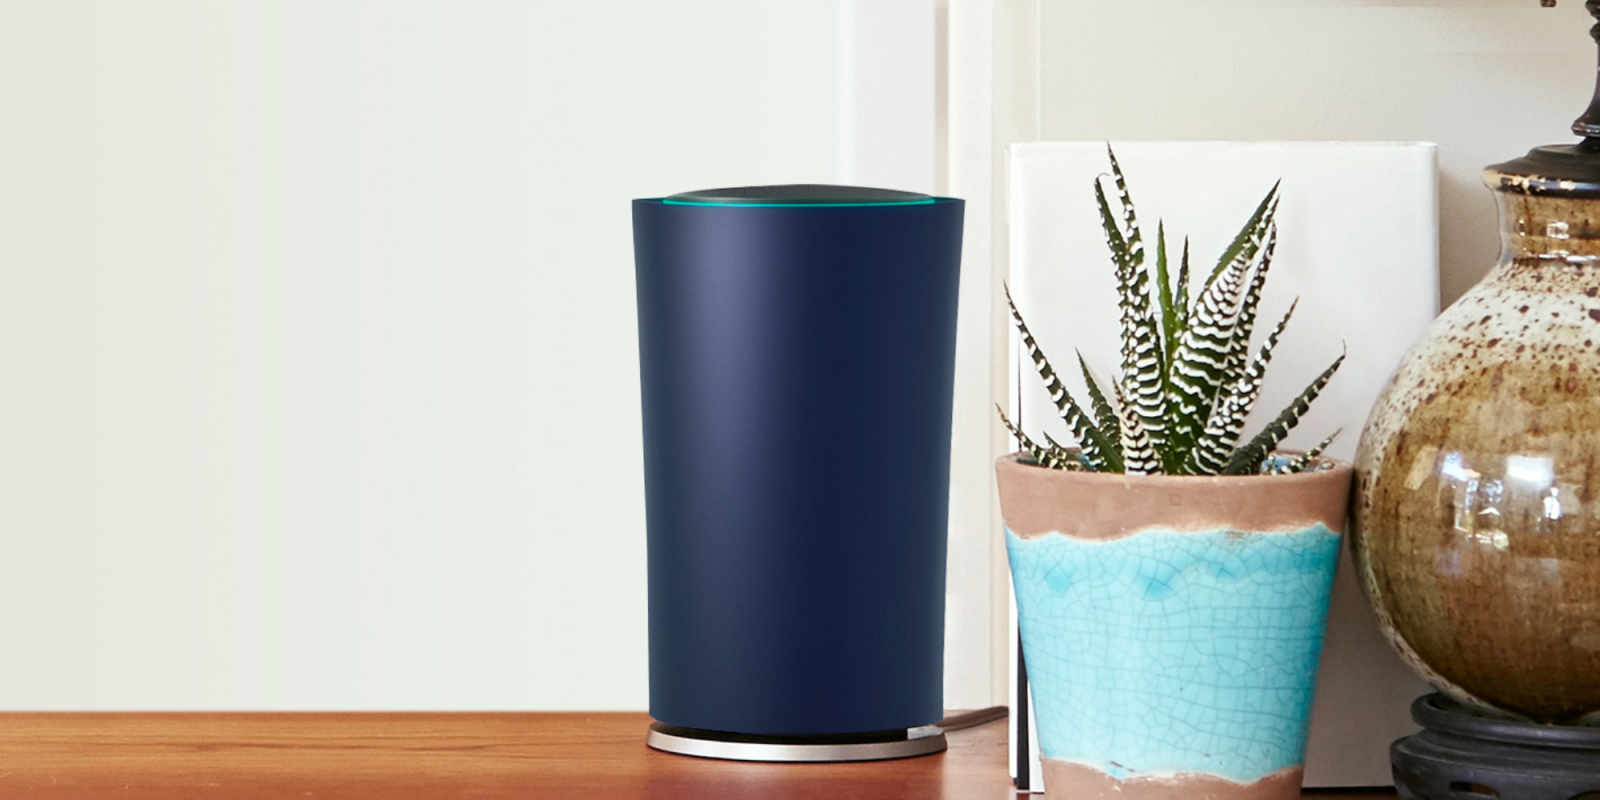 Enjoy up to 1900 Mbps speeds w/ TP-Link's $60 Google WiFi Router ($40 off)